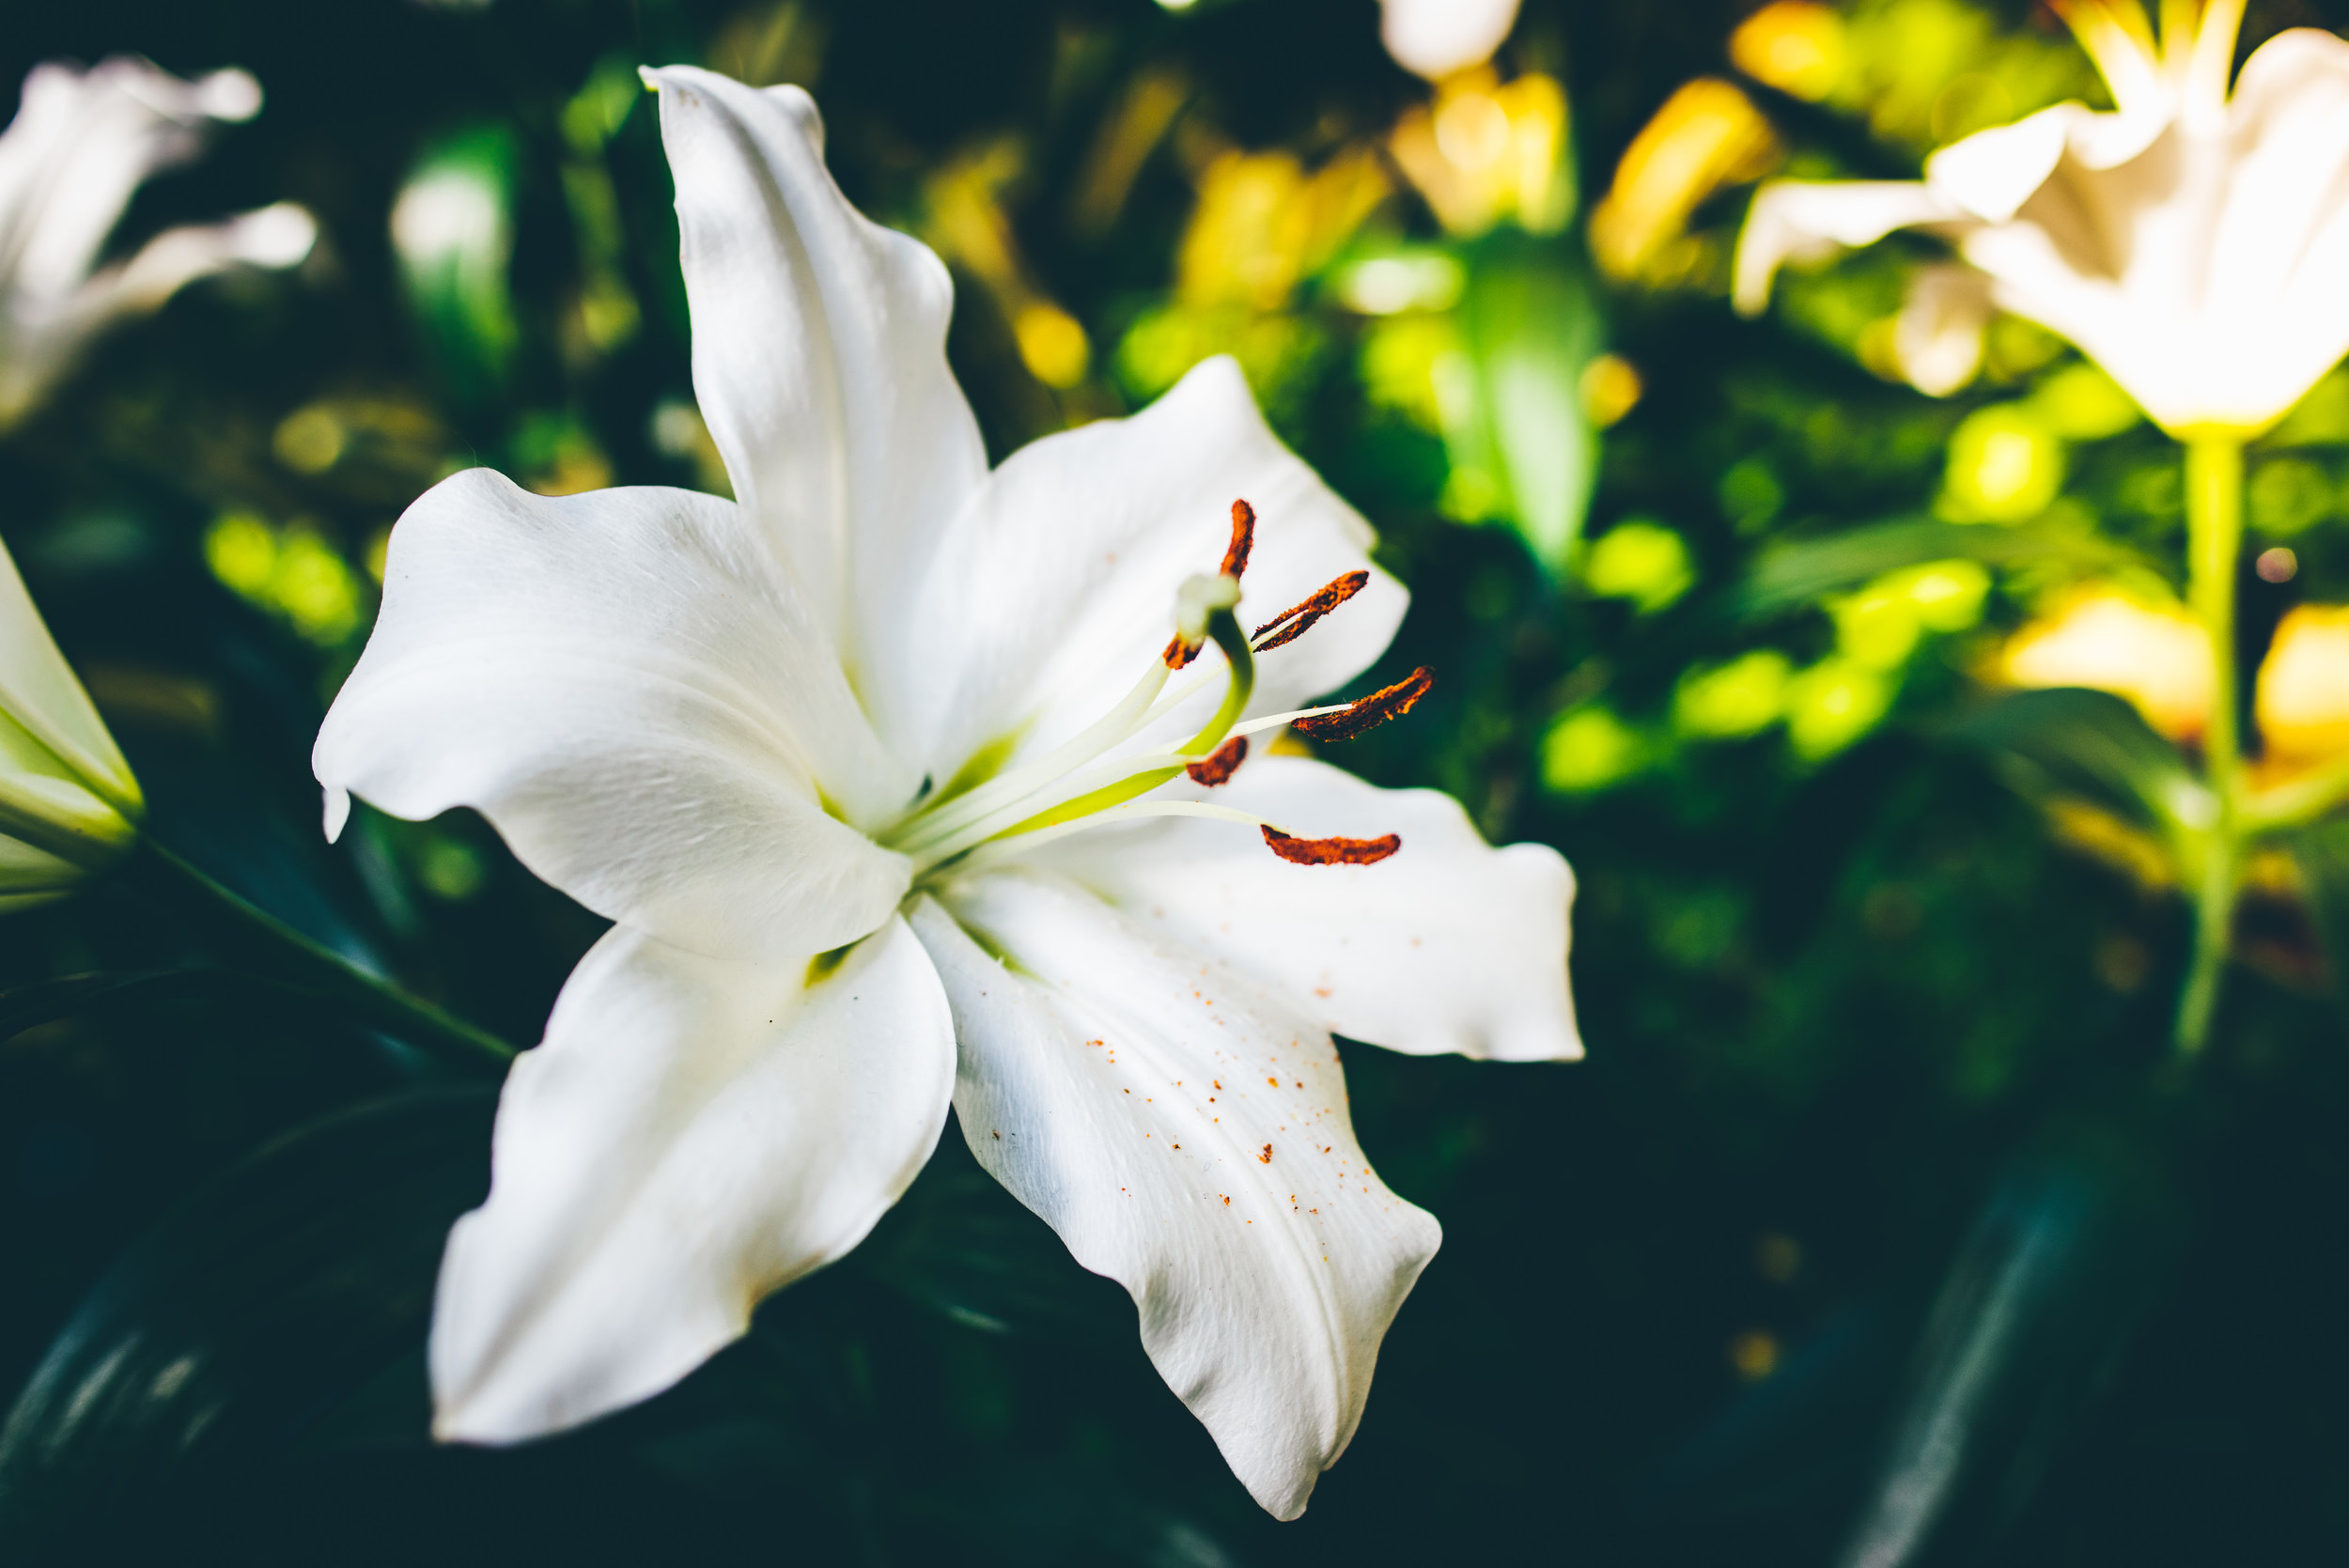 A mark of purity and grace throughout the ages, the regal  white lily  is a fitting symbol of the greater  meaning  of  Easter . Gracing millions of homes and churches, the flowers embody joy, hope and life. Learn more at  aggie-horticulture.tamu.edu